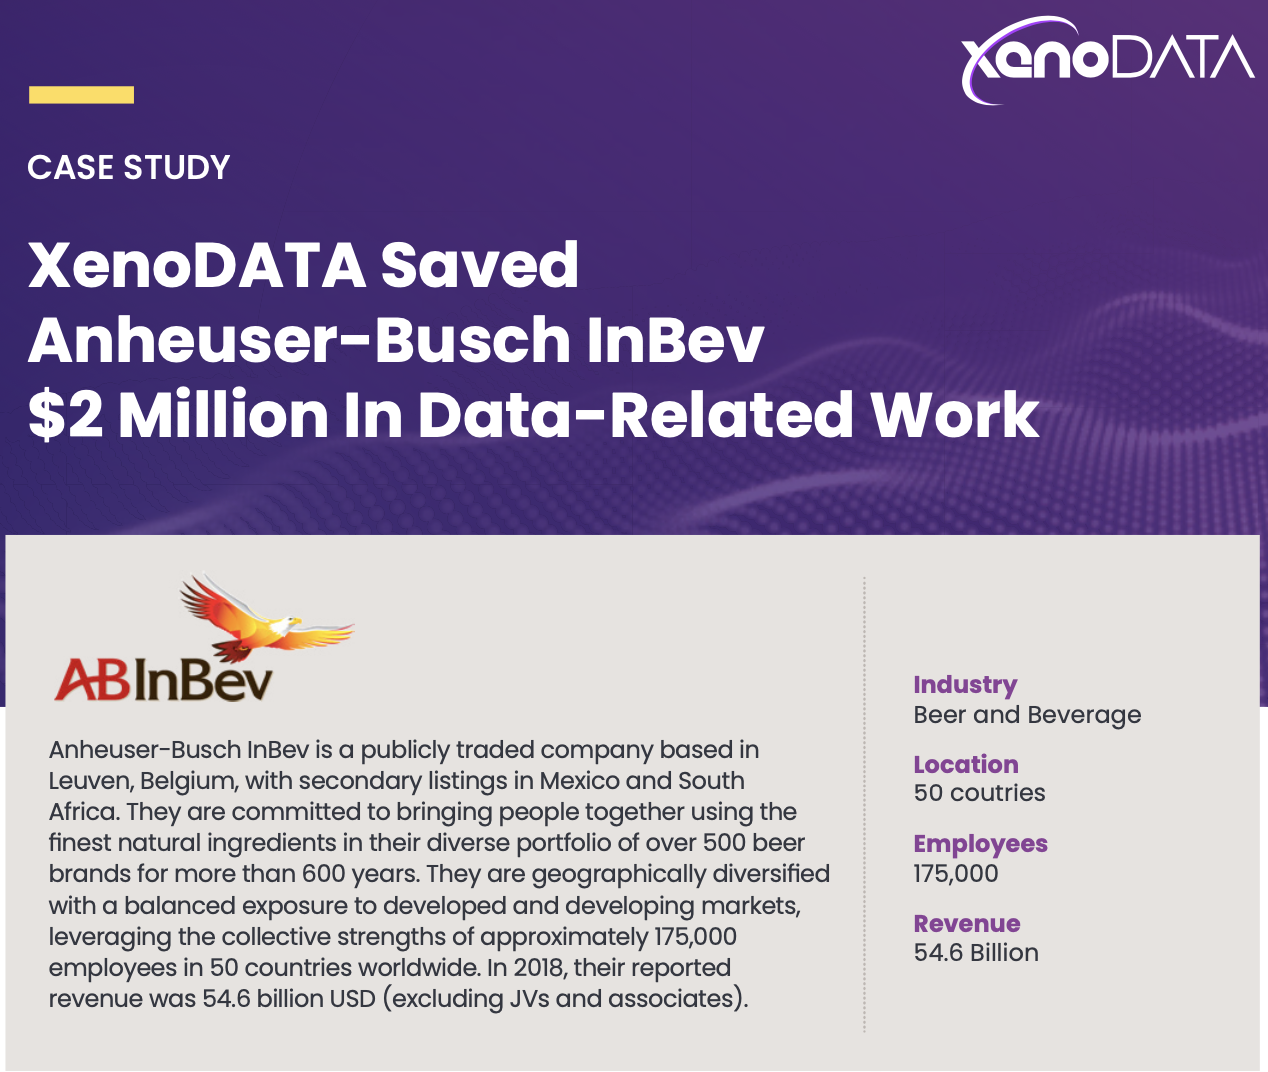 Anheuser Busch InBev People Team Saved $2M in Data Related Work